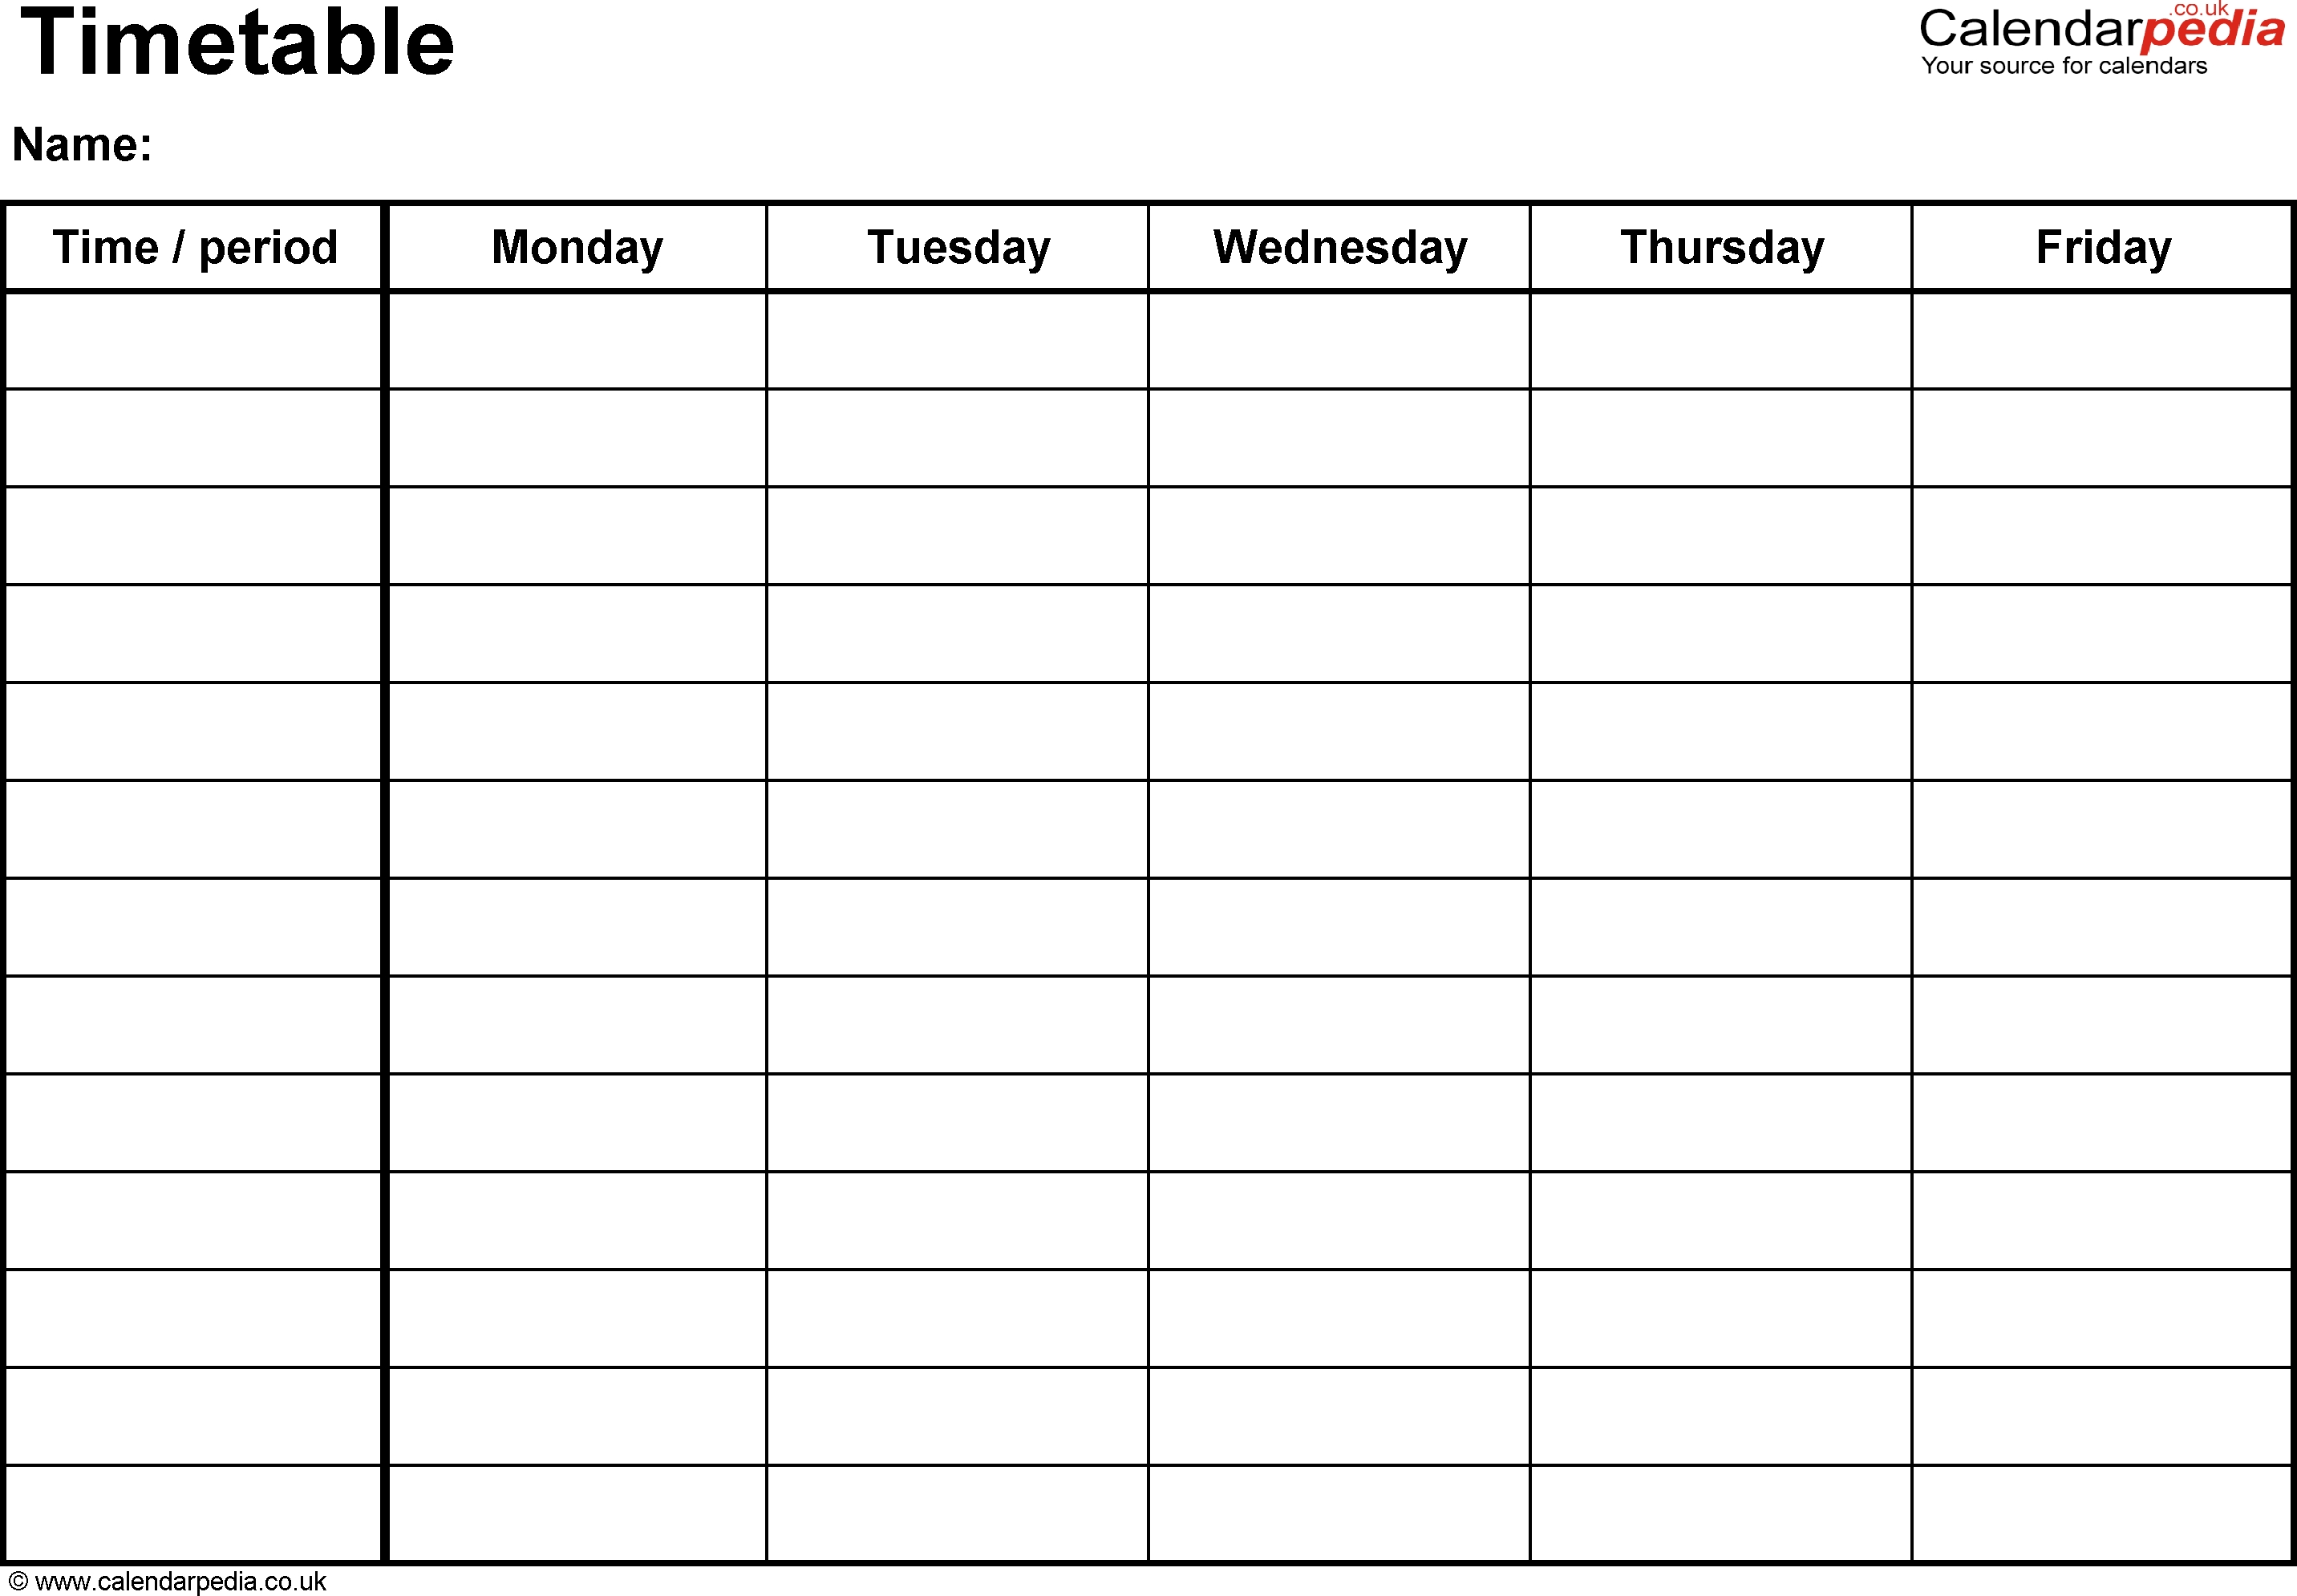 Timetable Template Download - Yeniscale.co  Monday Though Friday Timed Schedule